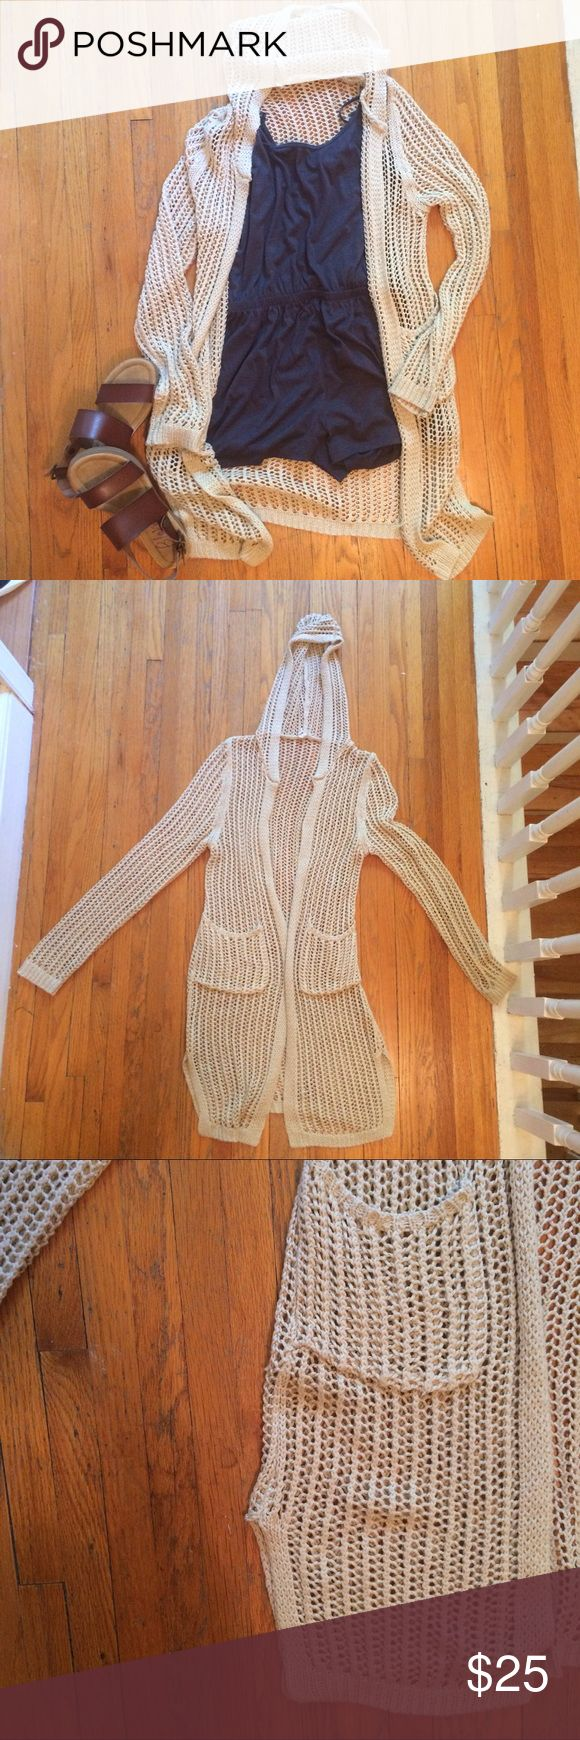 Long Open Knit Cardigan with Hood and Pockets NEVER WORN long cardigan with a hood and pockets. Model pics are only uploaded to show the fit/style - the color is not accurate. Color is actually a beige/tan. Super cute for the summer! Pair with a summer dress or romper and some cute sandals or wedges :) purchased from Apricot Lane Boutique in Madison, WI.                       **BLUE H&M ROMPER ALSO FOR SALE ($8) - see separate listing or bundle** POL Sweaters Cardigans